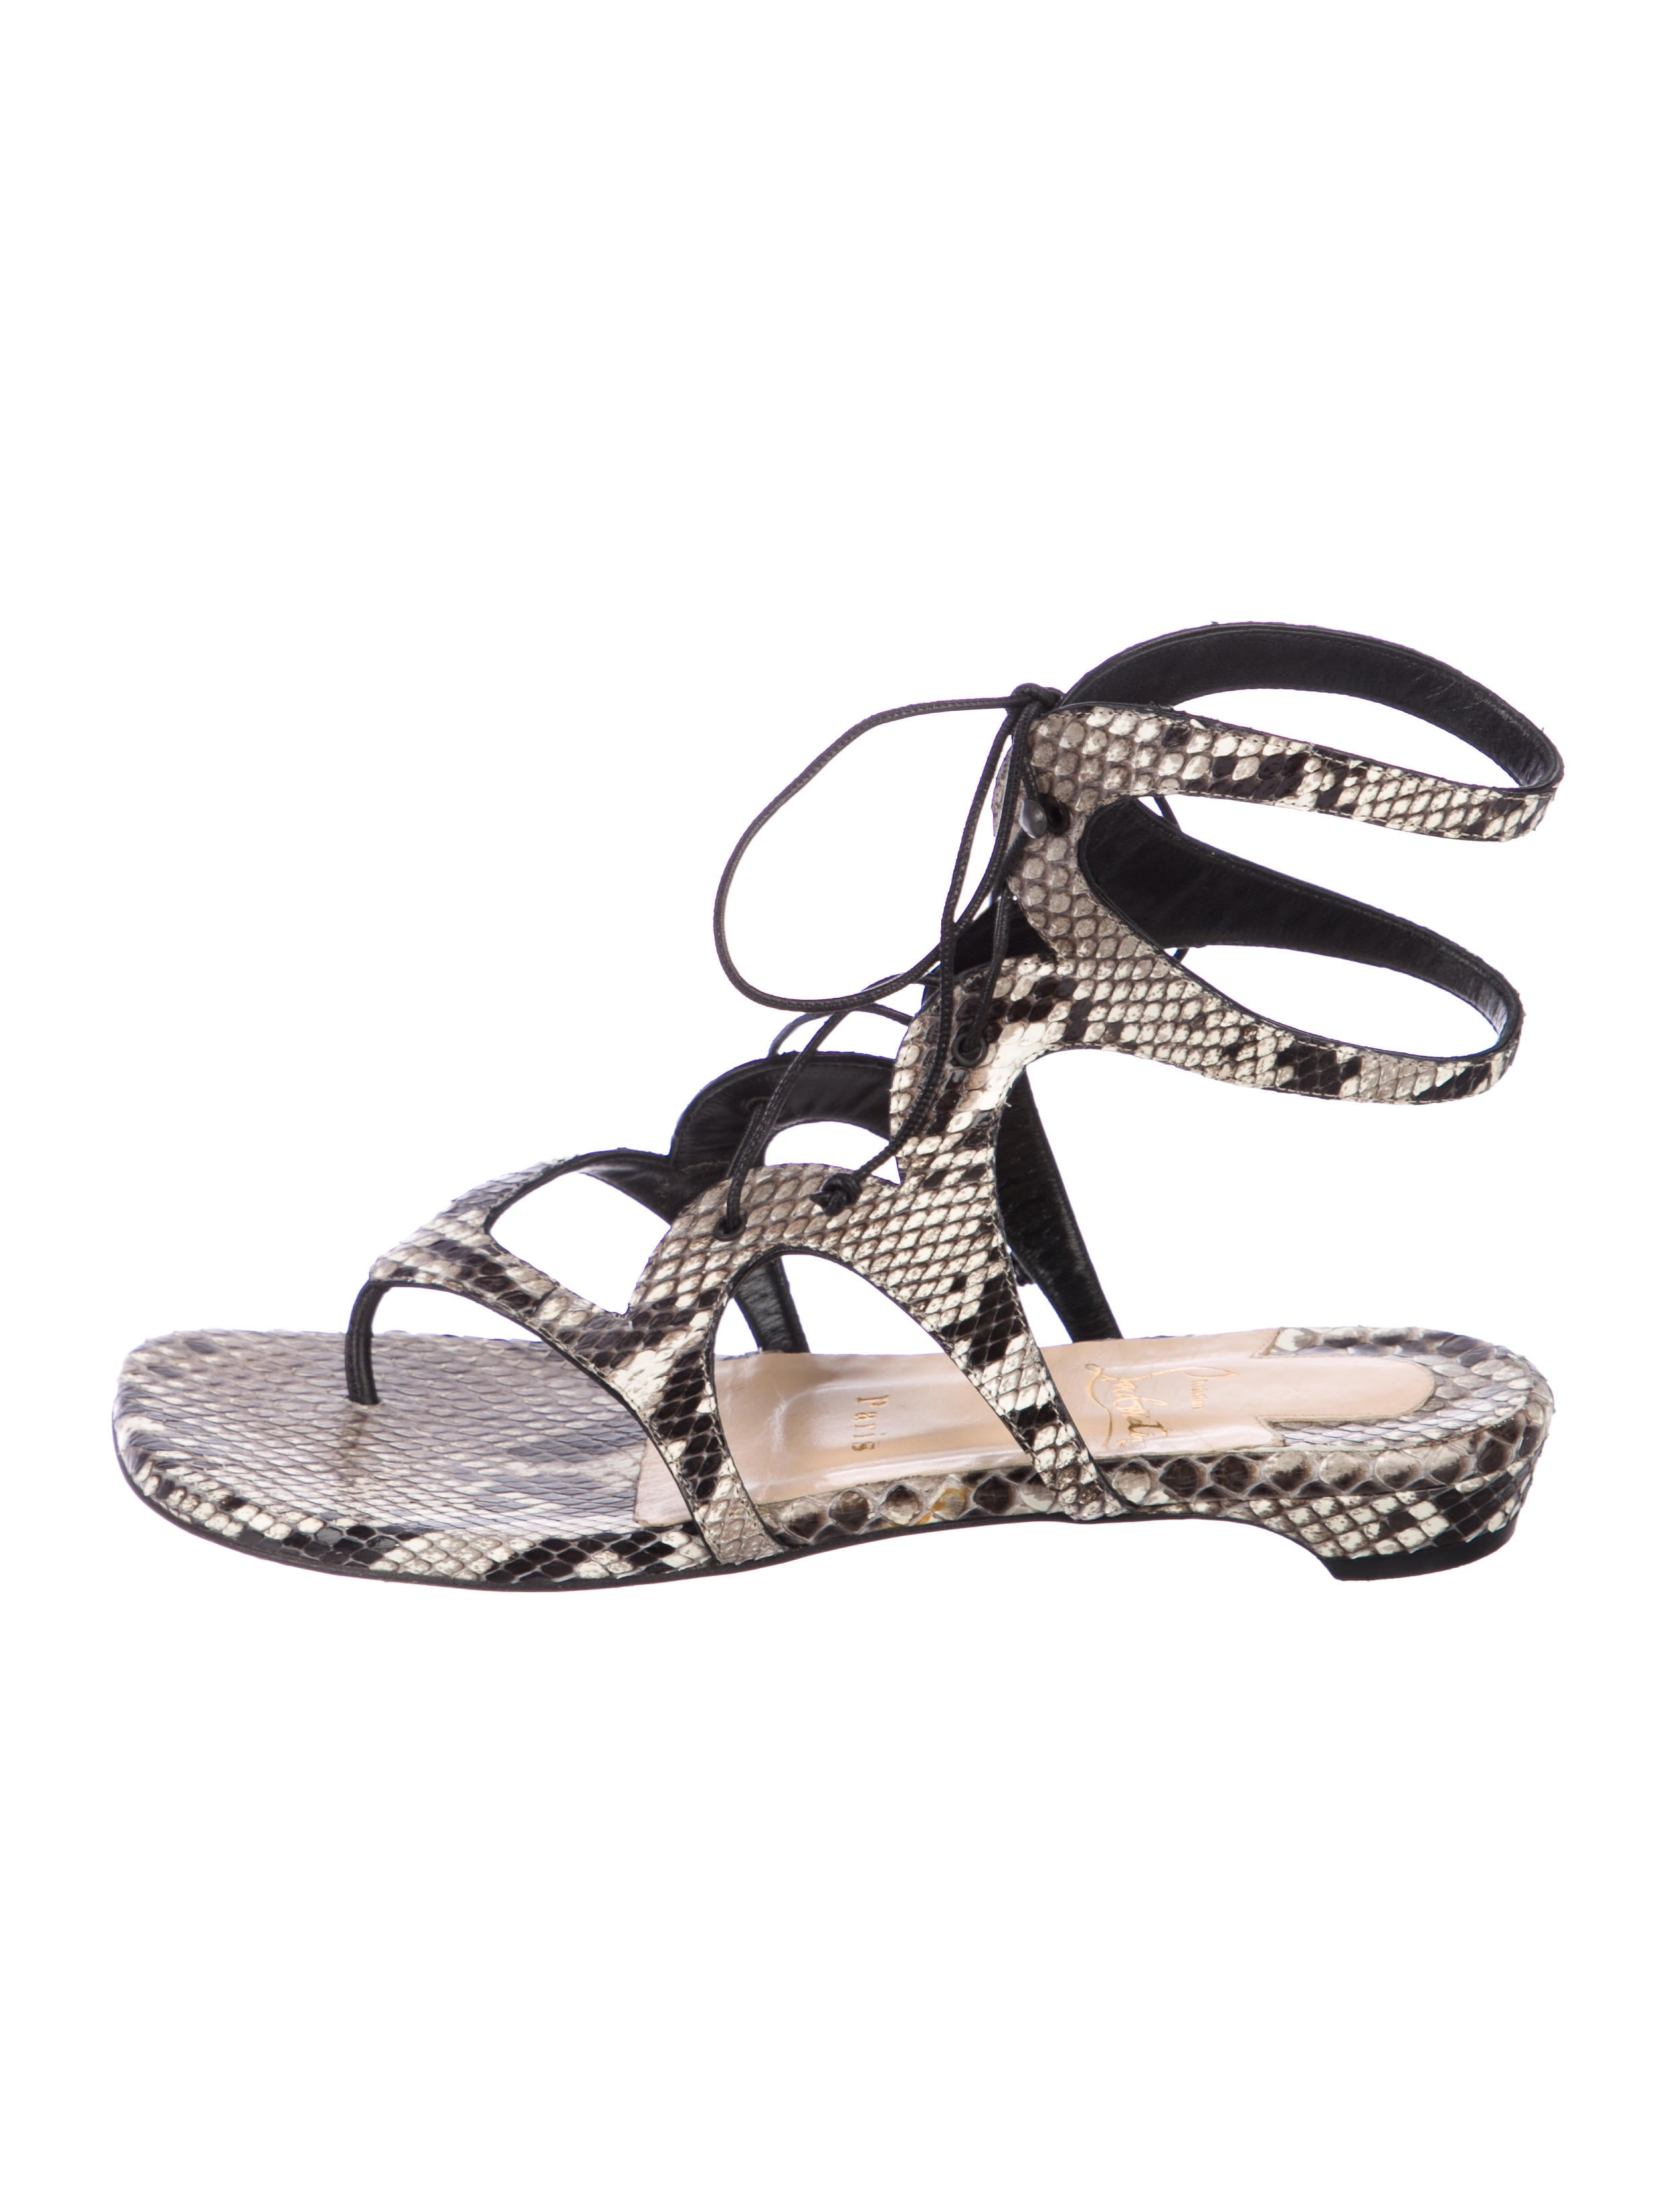 5a592db7b40 Christian Louboutin Snakeskin Thong Sandals - Shoes - CHT111764 ...